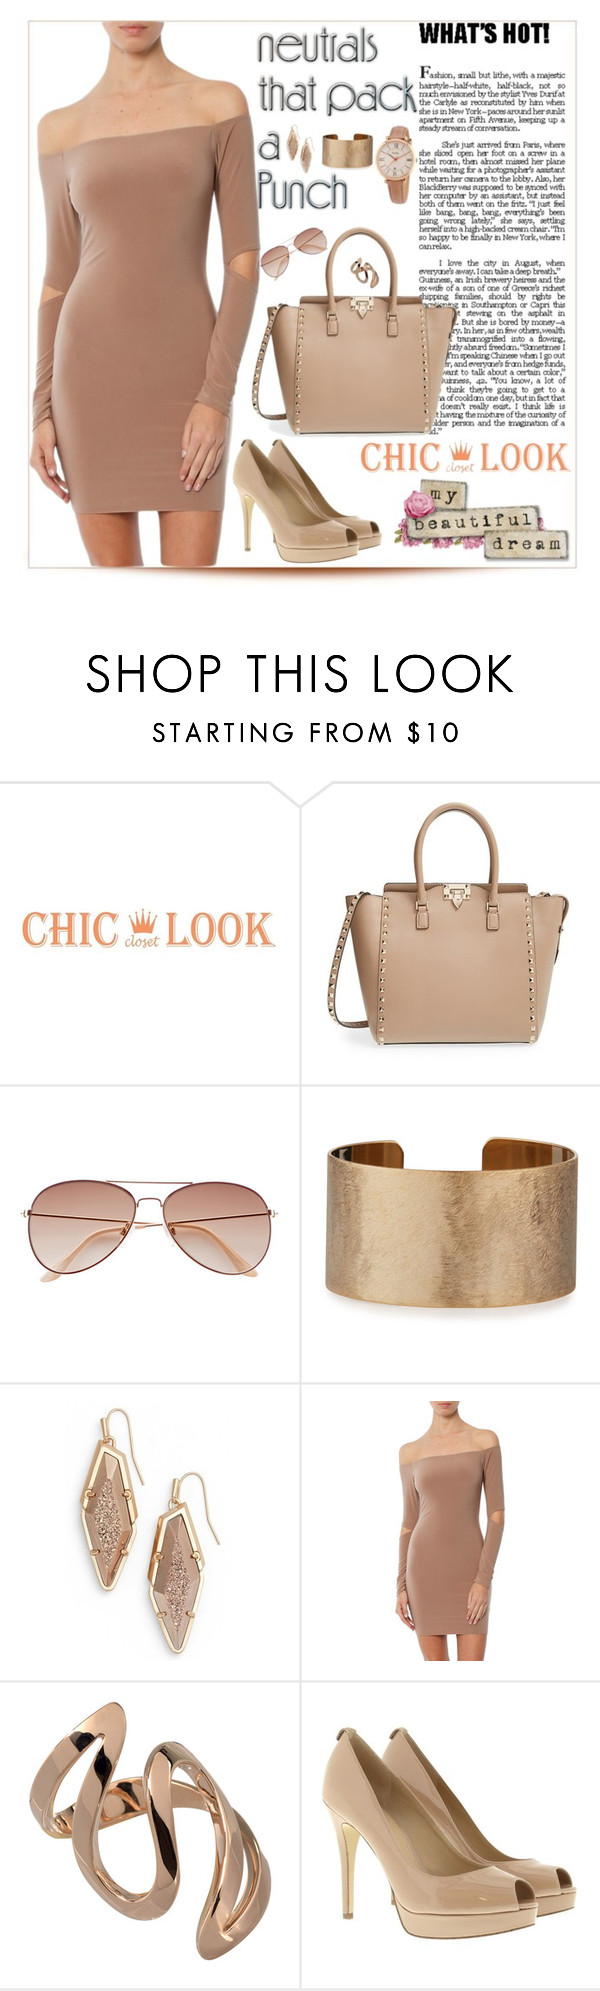 """Cool Neutrals"" by purplerose27 ❤ liked on Polyvore featuring Valentino, H&M, Panacea, Kendra Scott, MICHAEL Michael Kors and FOSSIL"